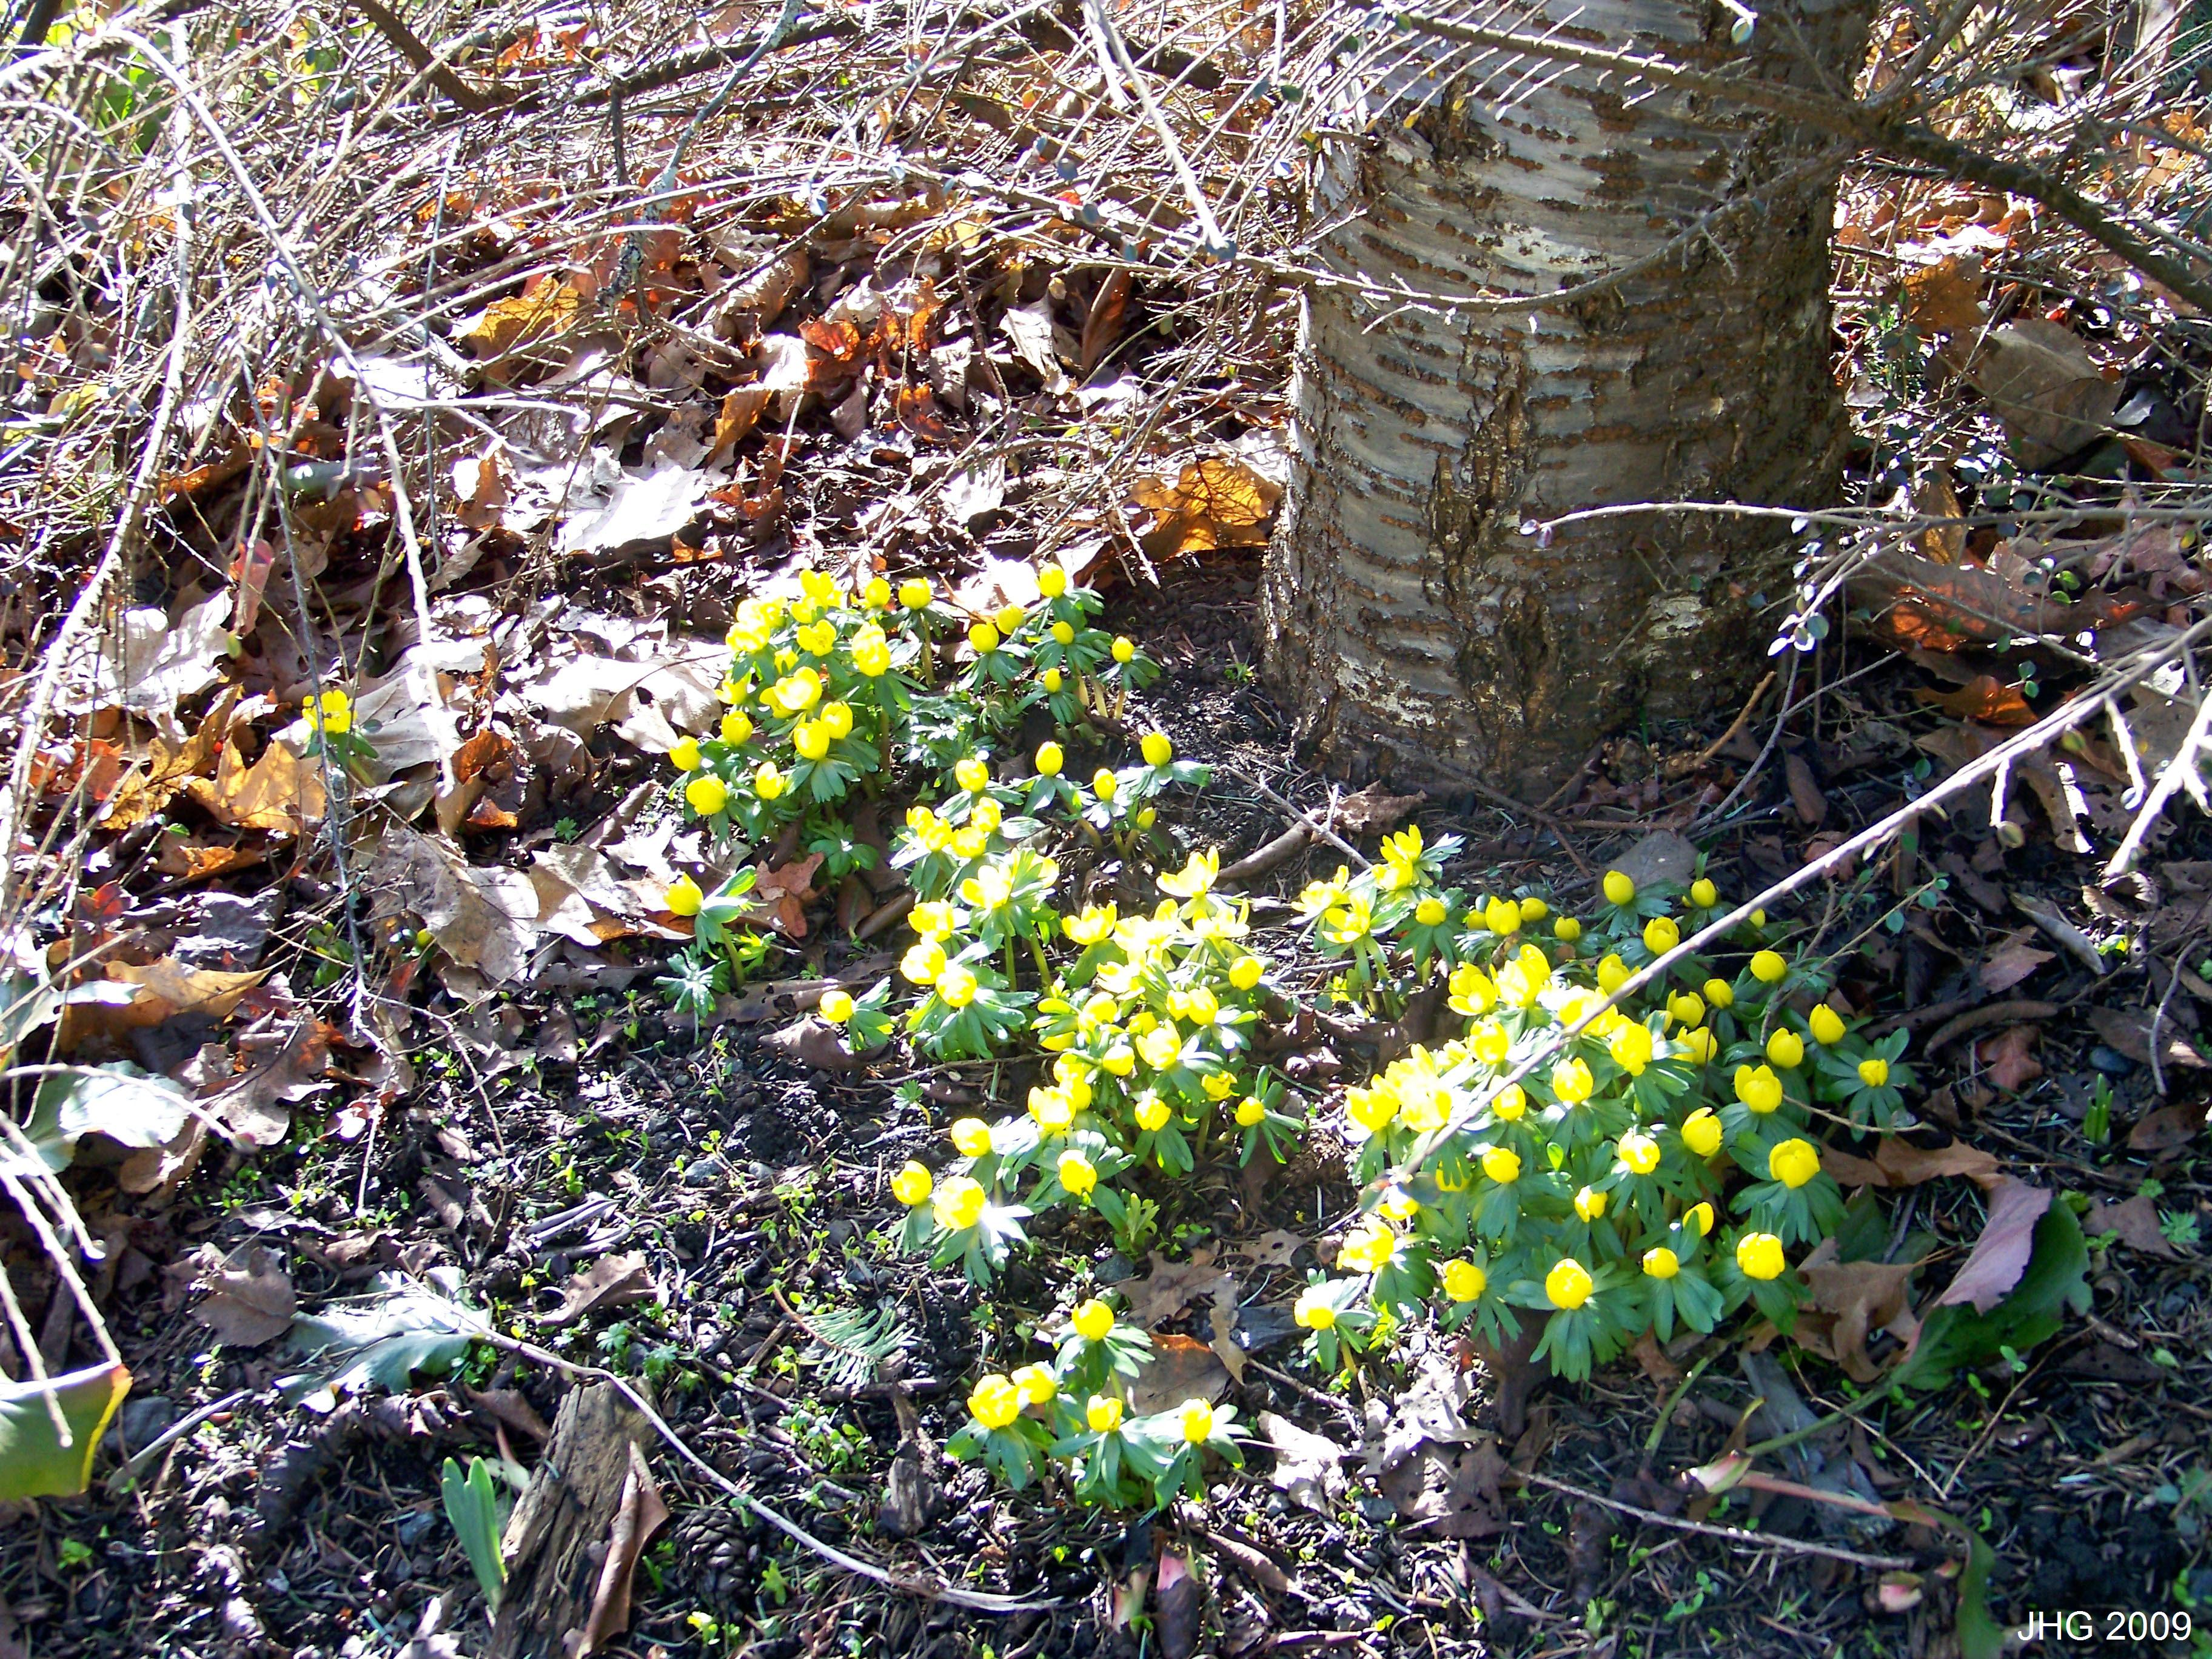 A group of Eranthis hymalis at Finnerty Gardens.